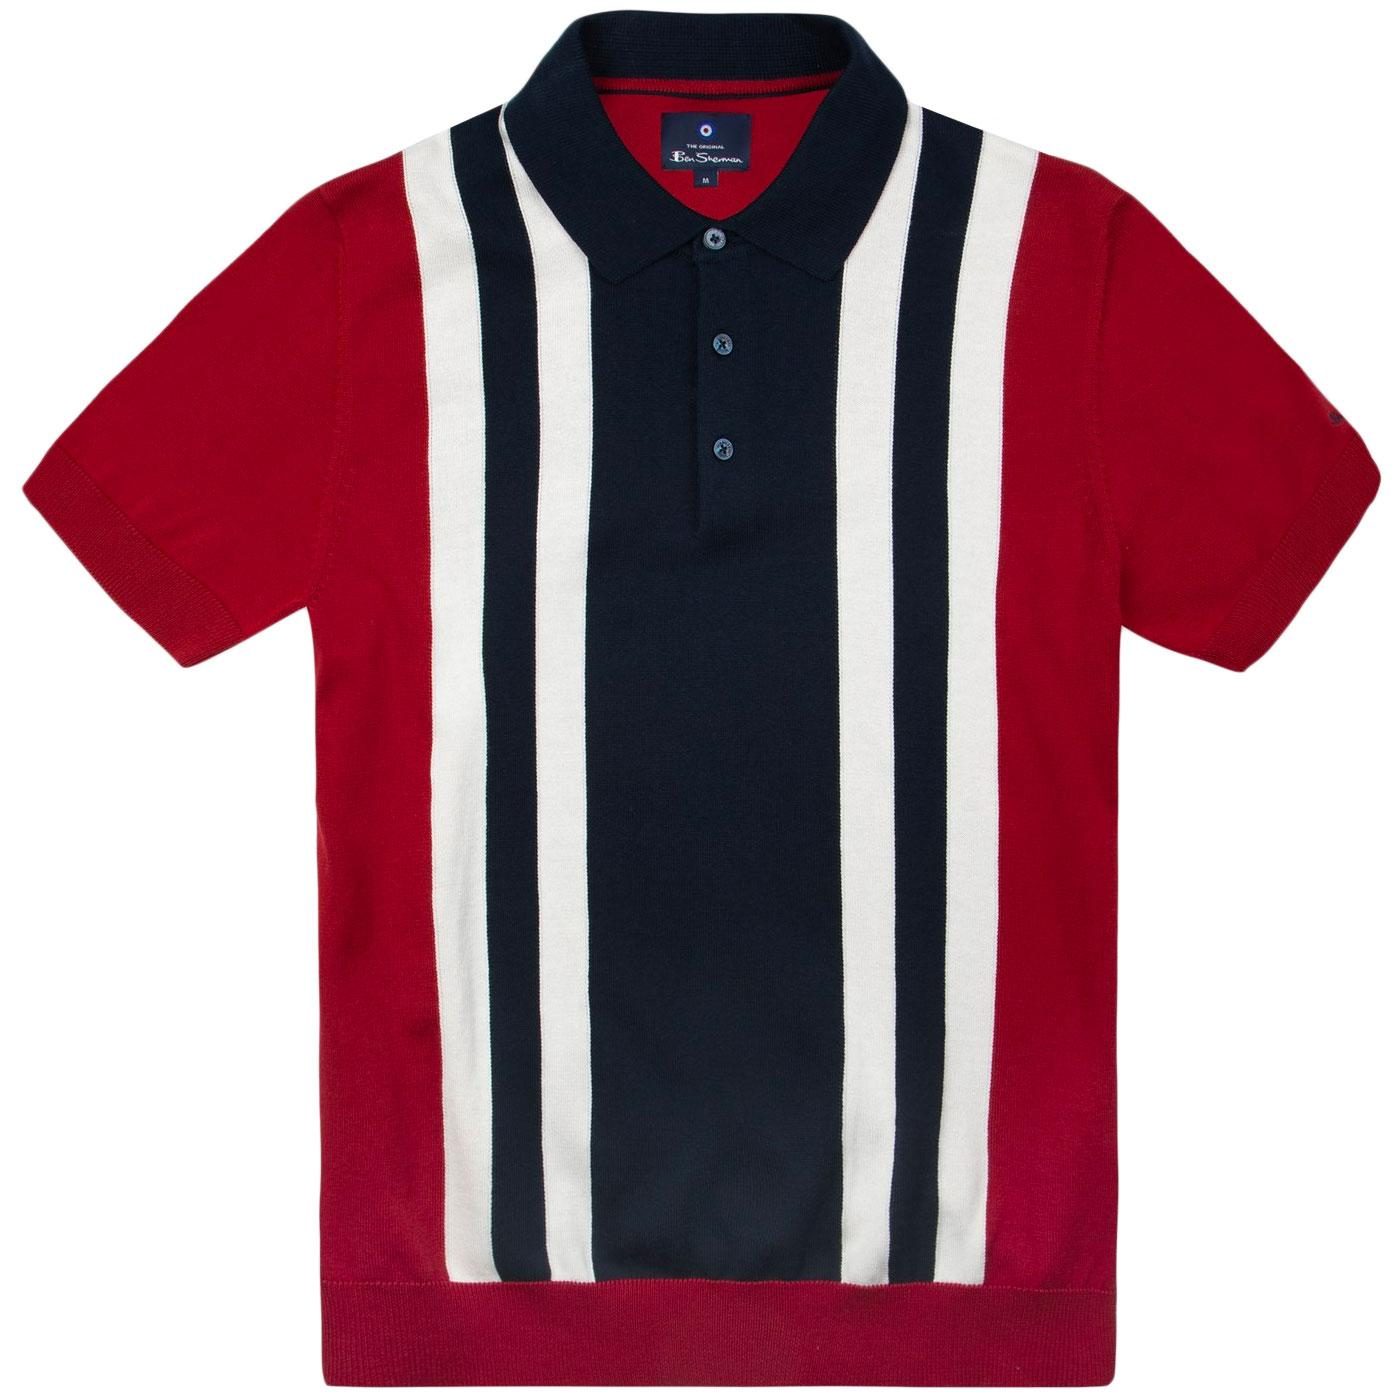 BEN SHERMAN 60s Mod Stripe Knit Polo Shirt (Red)